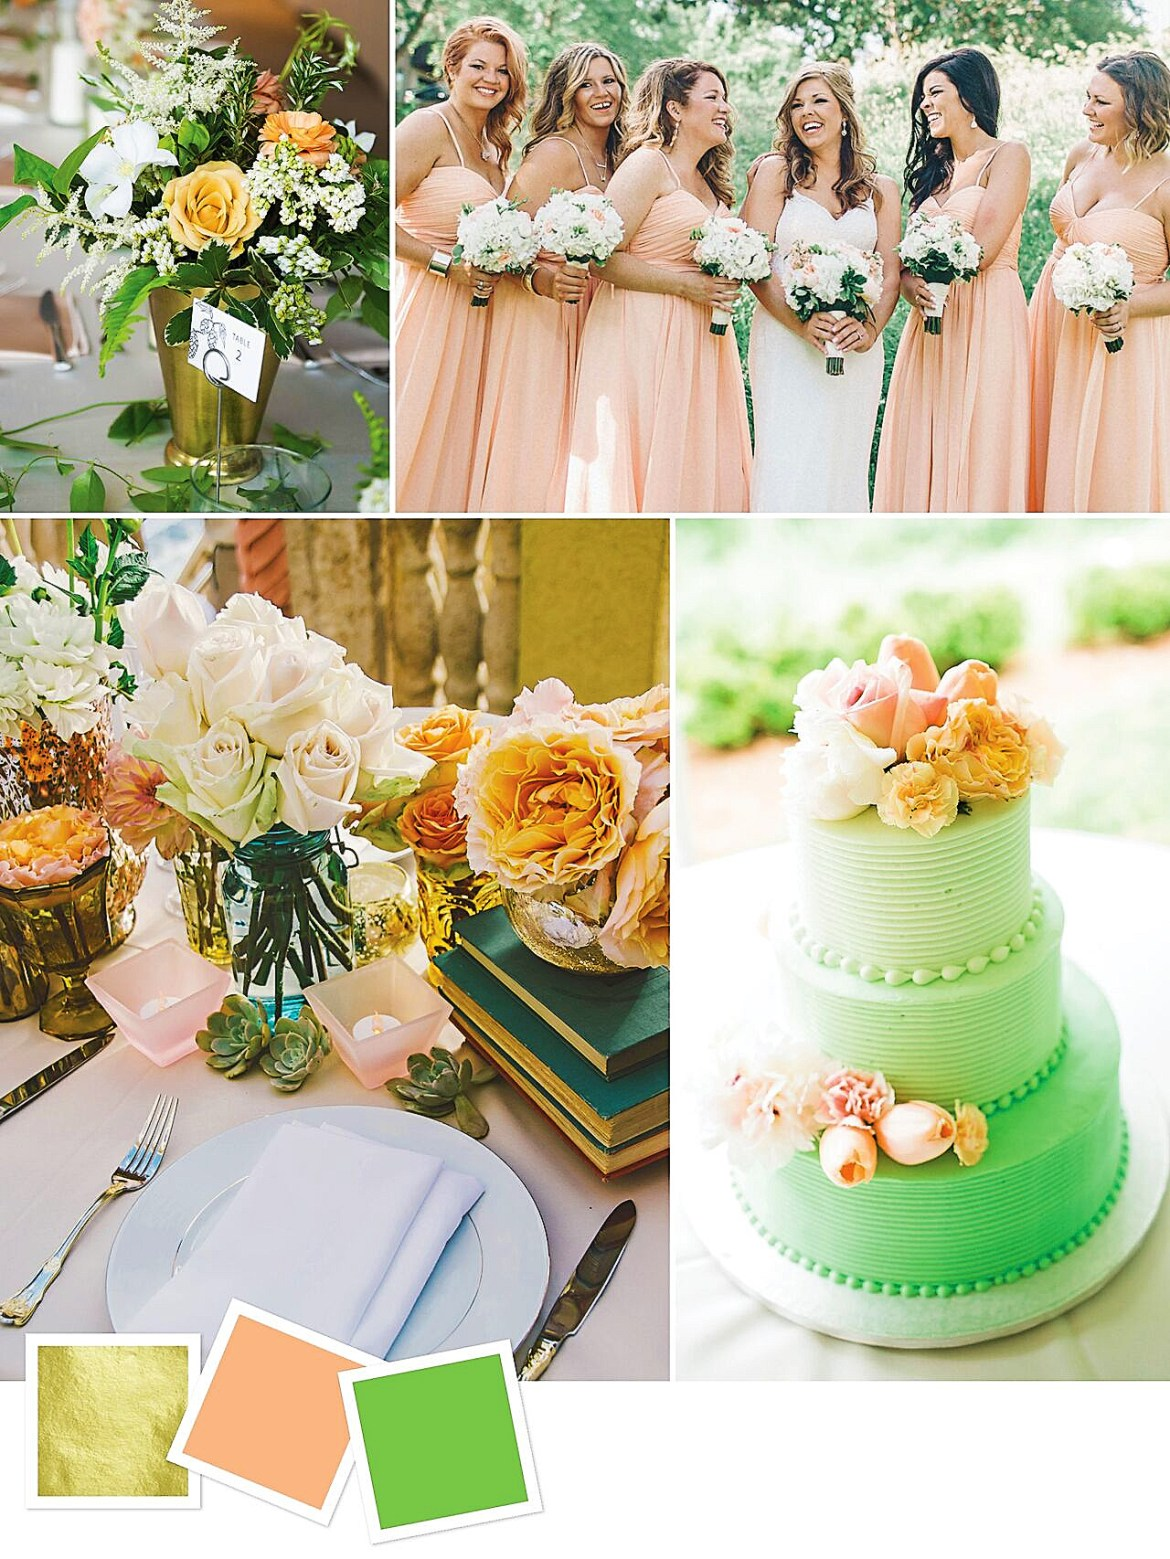 Fresh Wedding Color Palette for Your Wedding Themes   Gold + Peach + Green : Gold, Peach And Green Wedding Color Palette